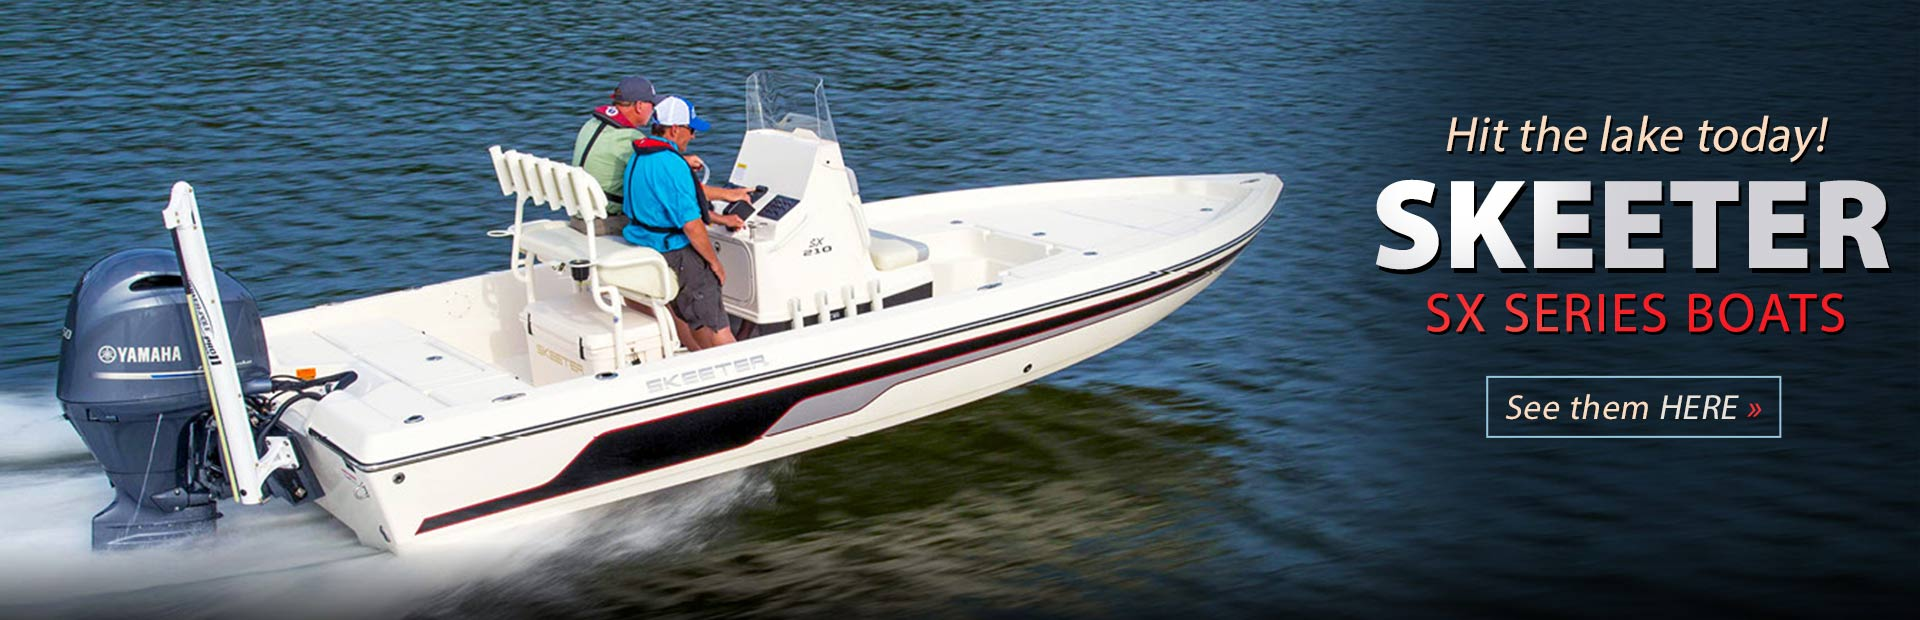 Skeeter SX Series Boats: Click here to view the models.